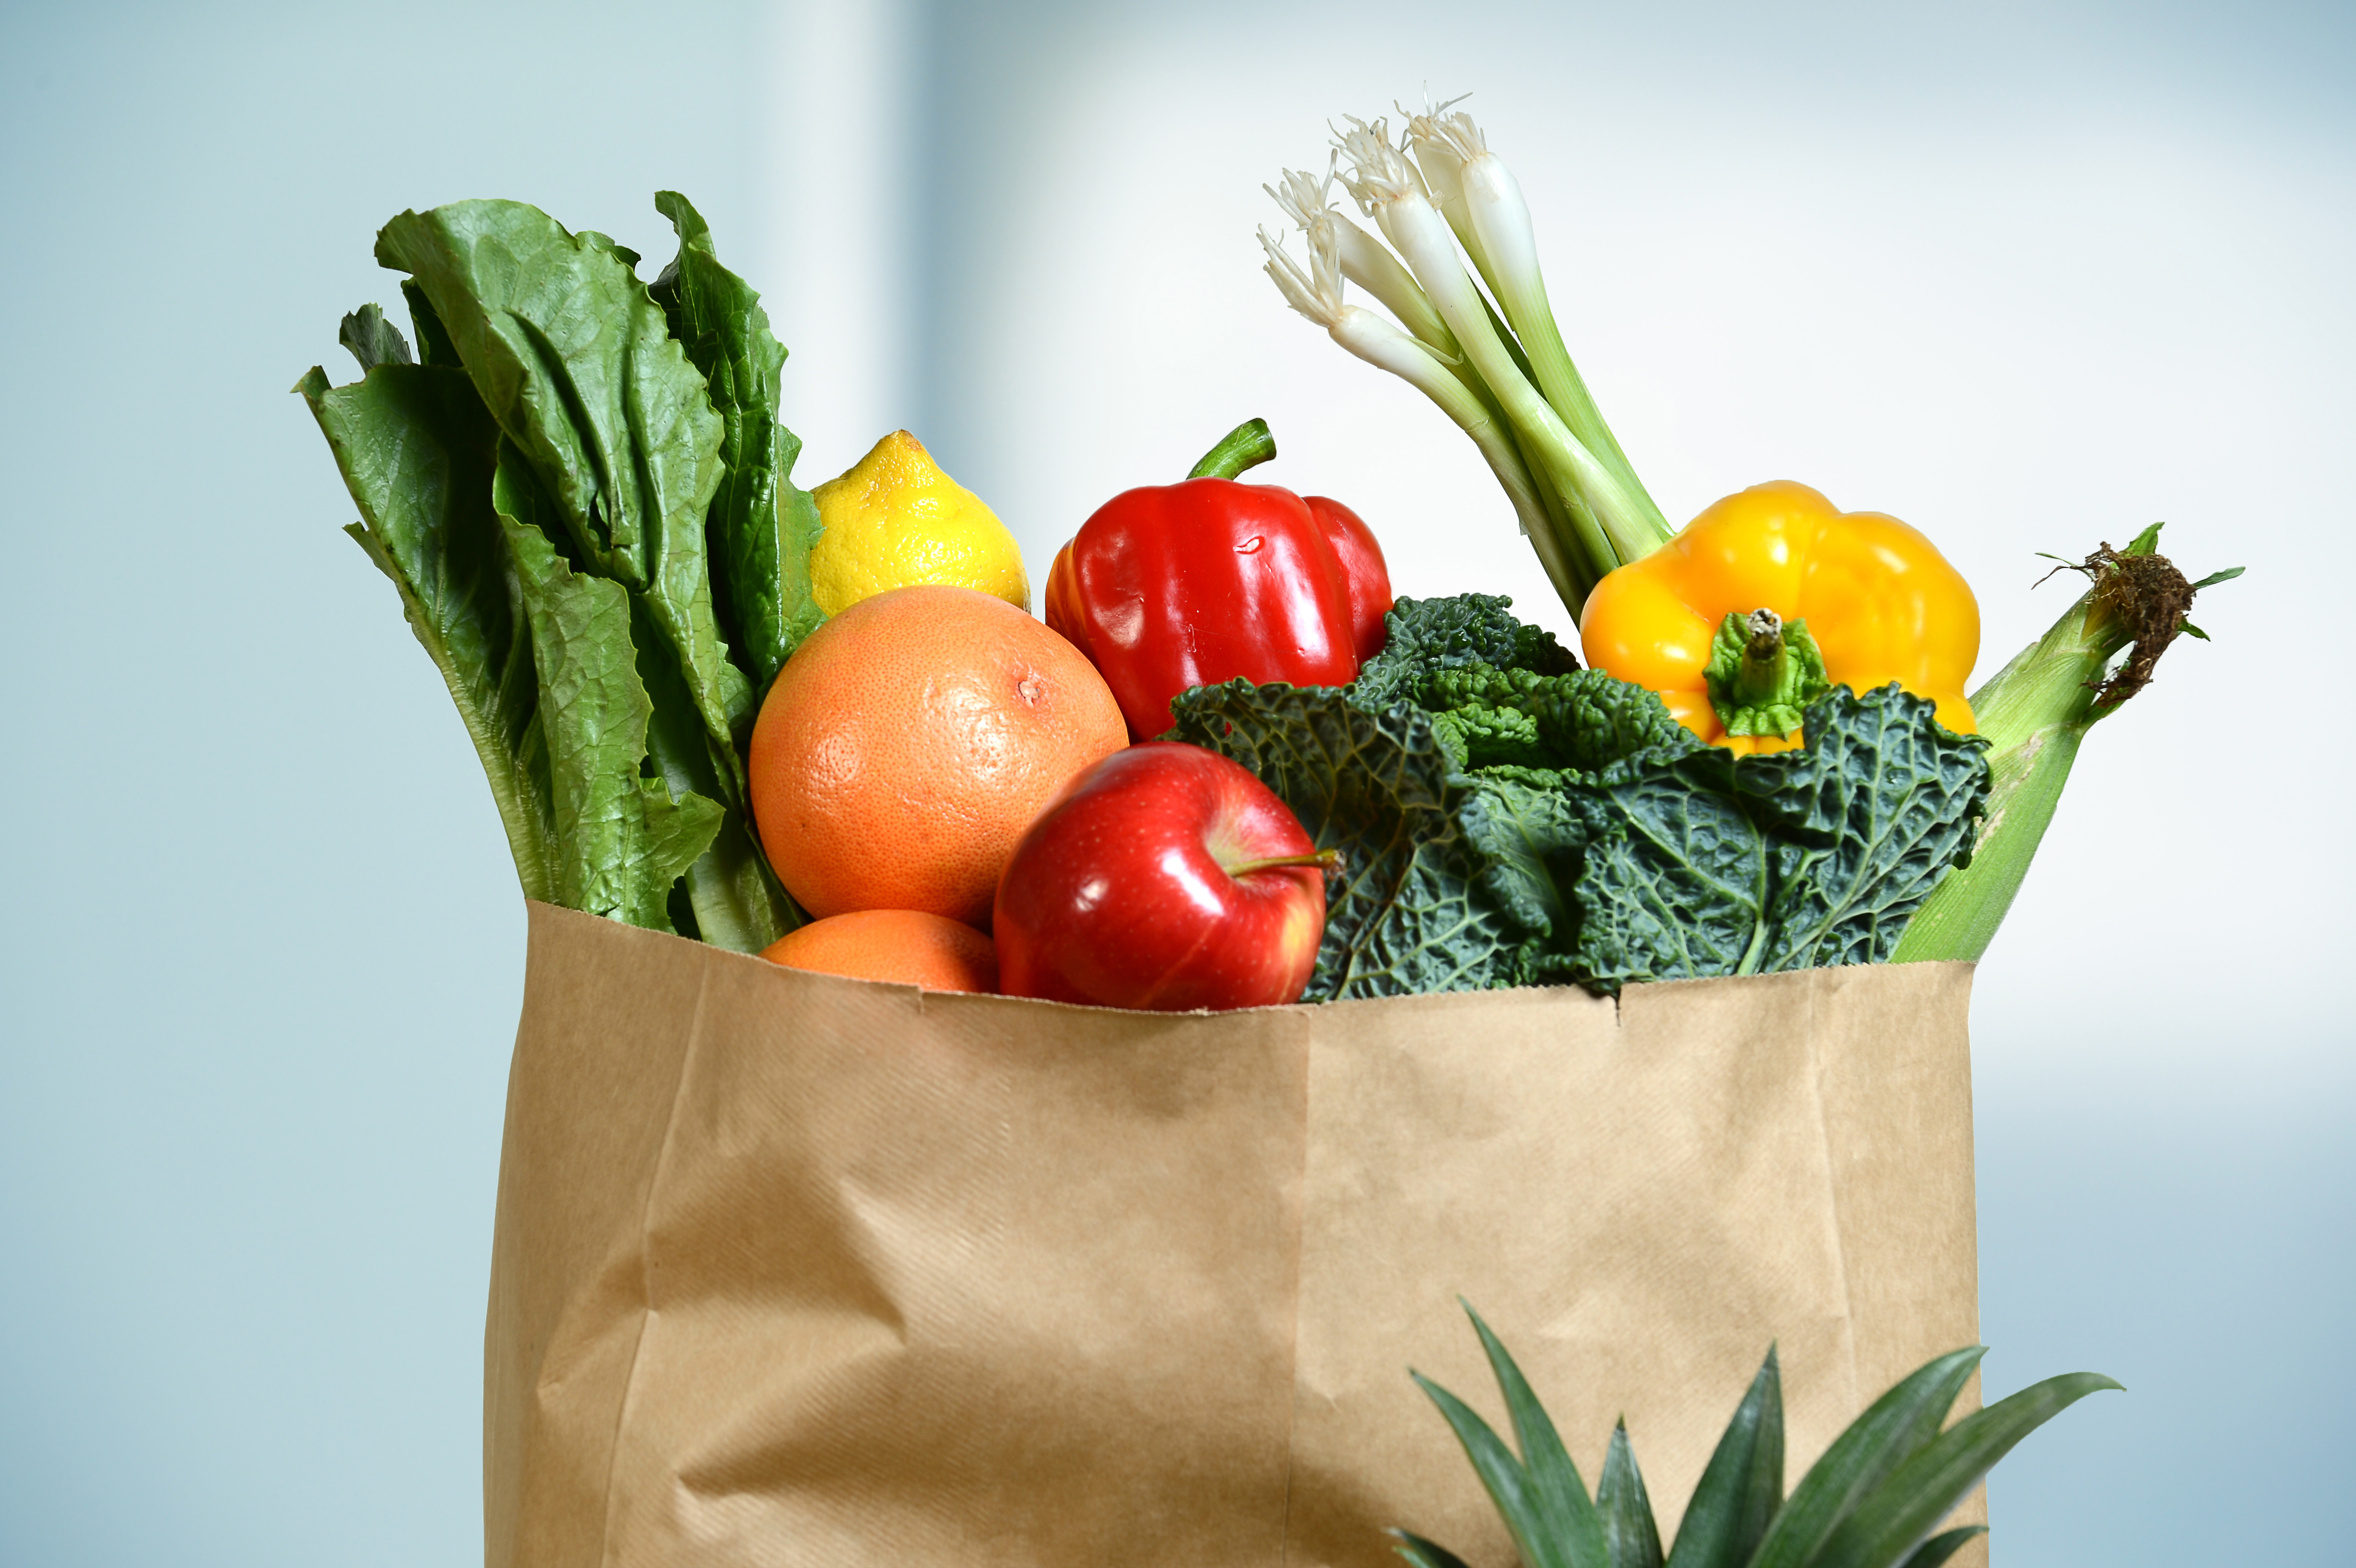 A brown paper bag full of fresh fruits and vegetables is isolated on a light background